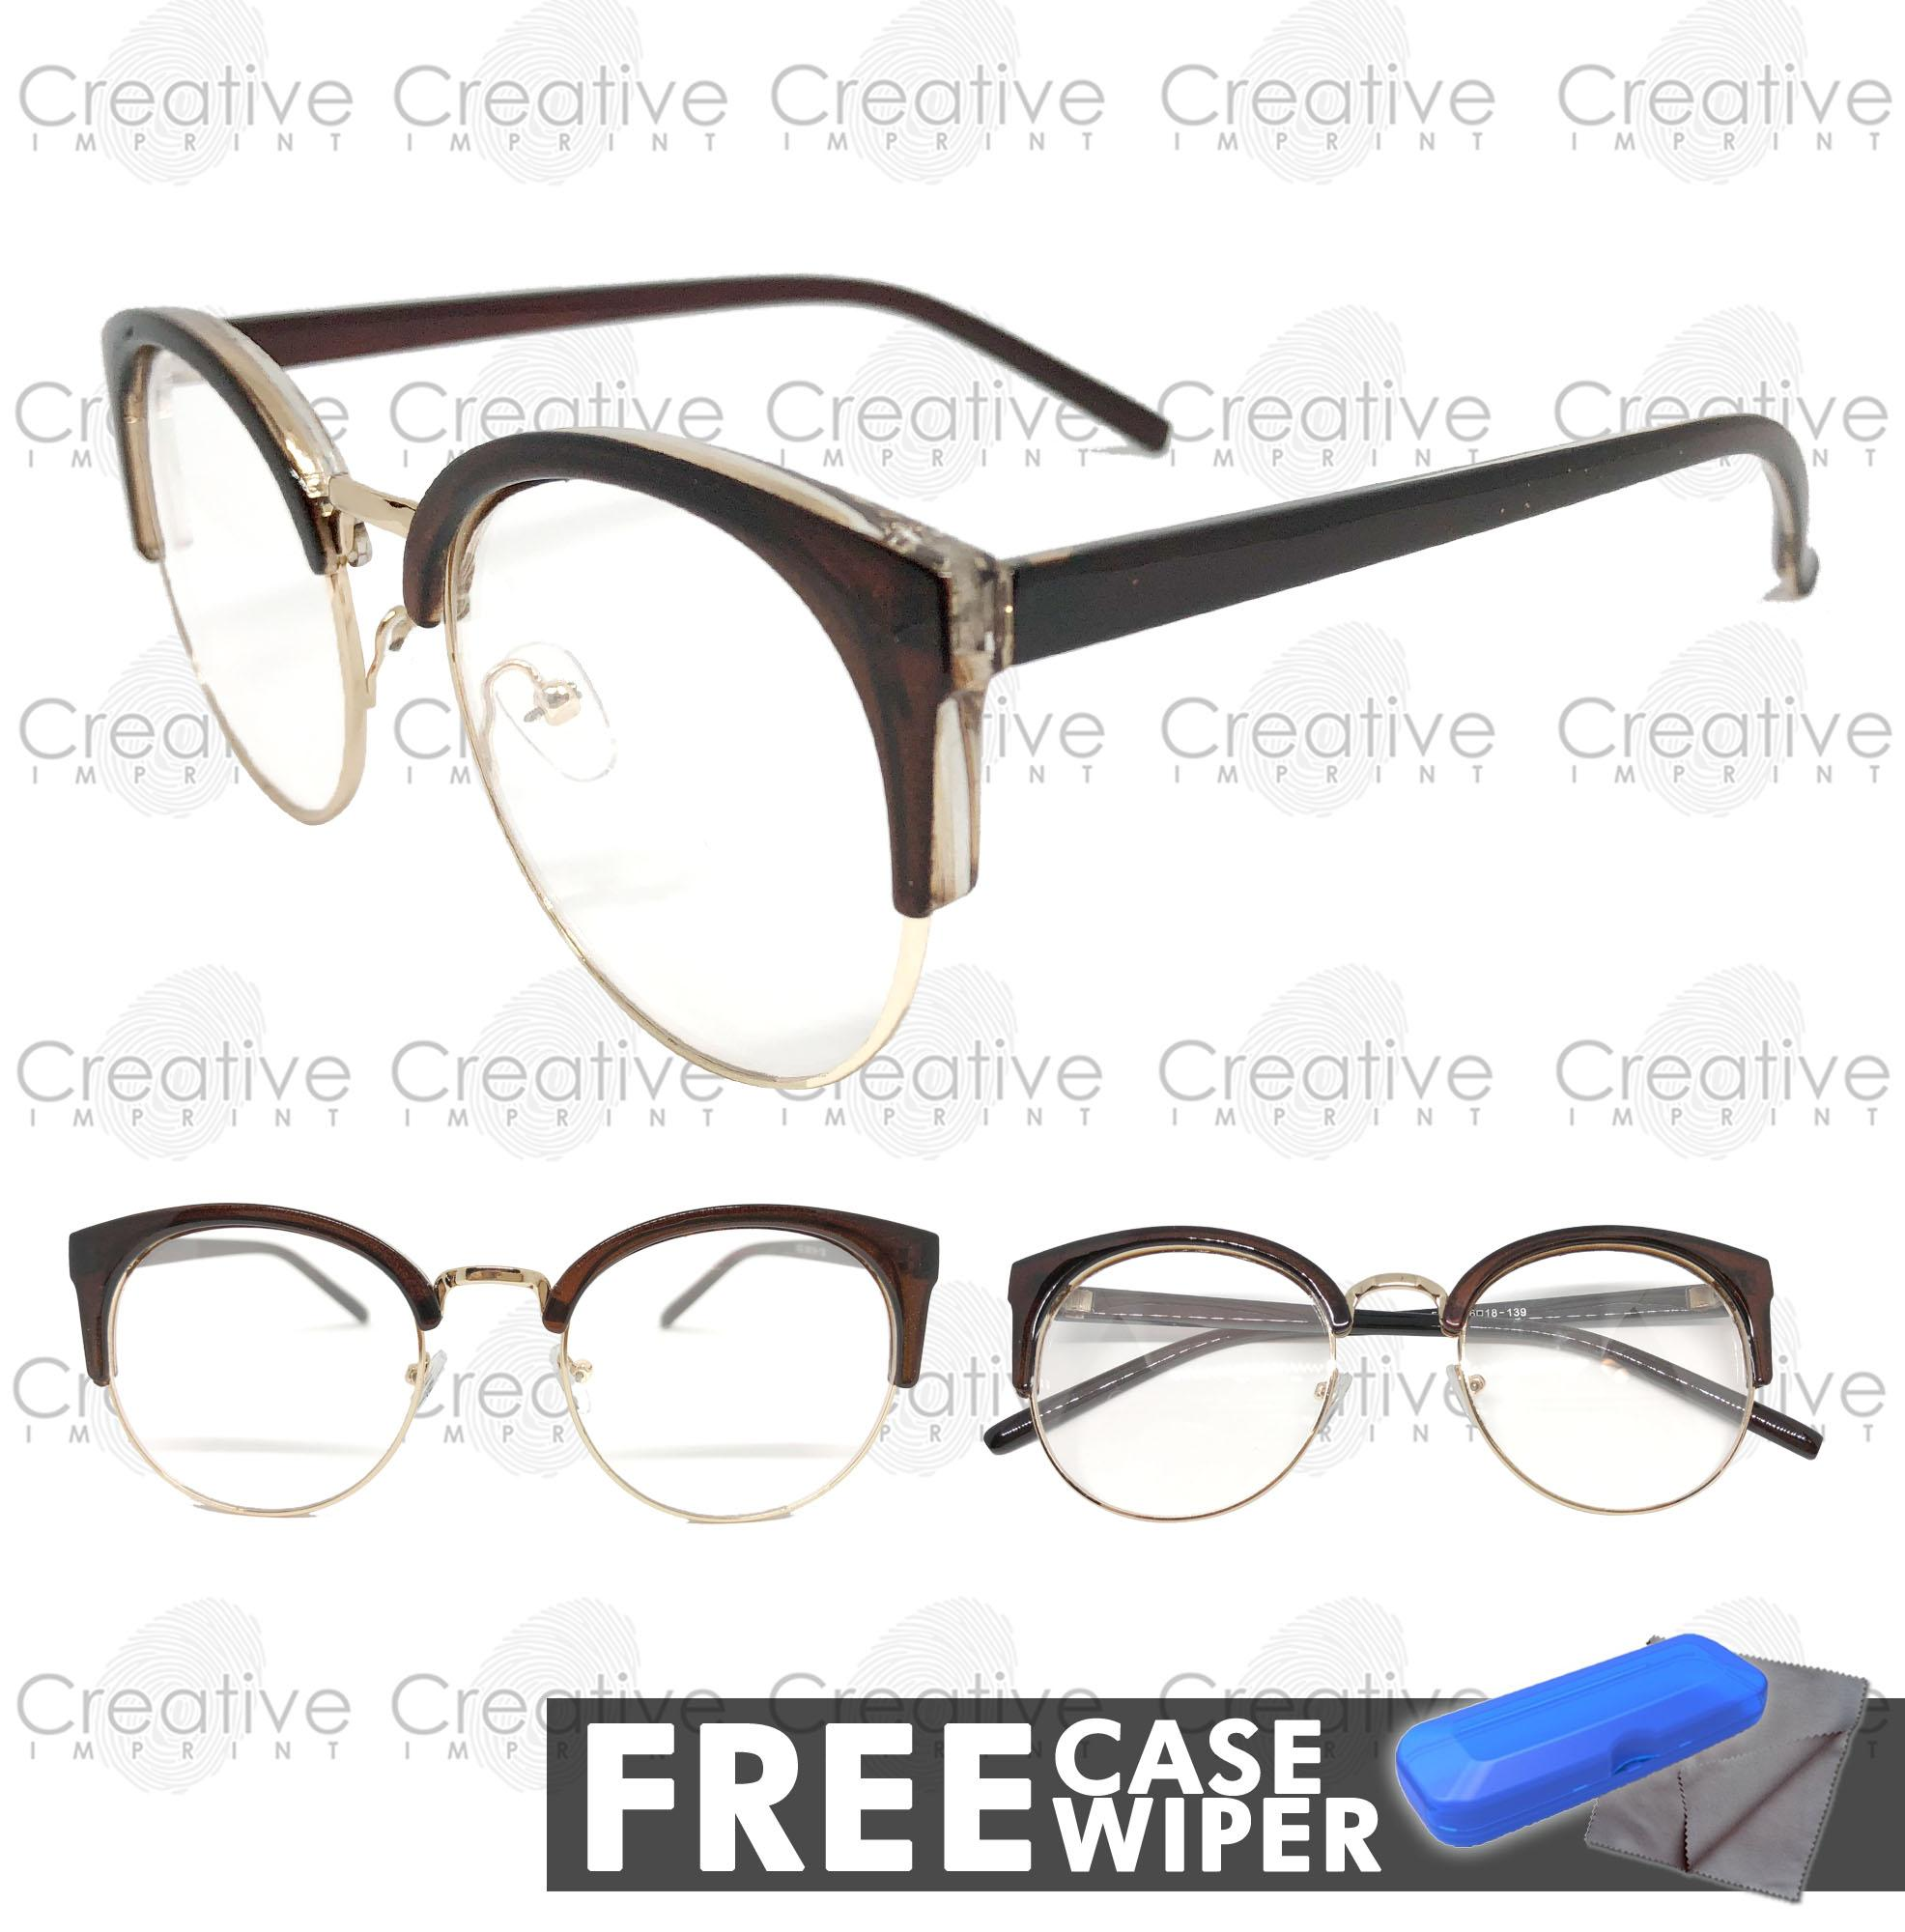 d4527fdb64 Creative Imprint Eyeglasses Replaceable Lens (Clubmaster 02 Brown Gold)  Premium High Quality Specs Metal Korean